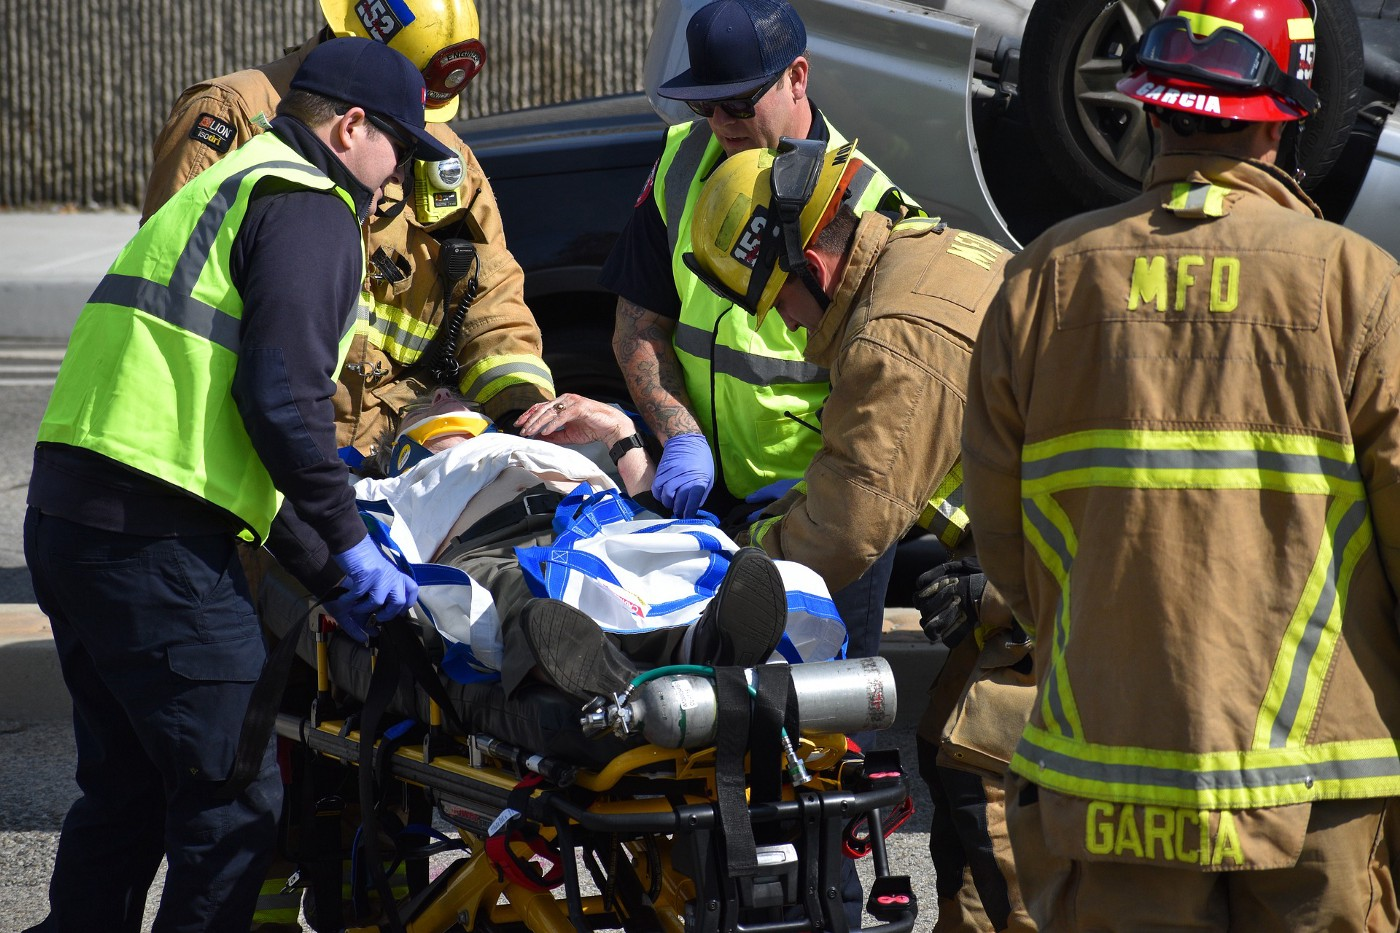 First responders move a person on a gurney